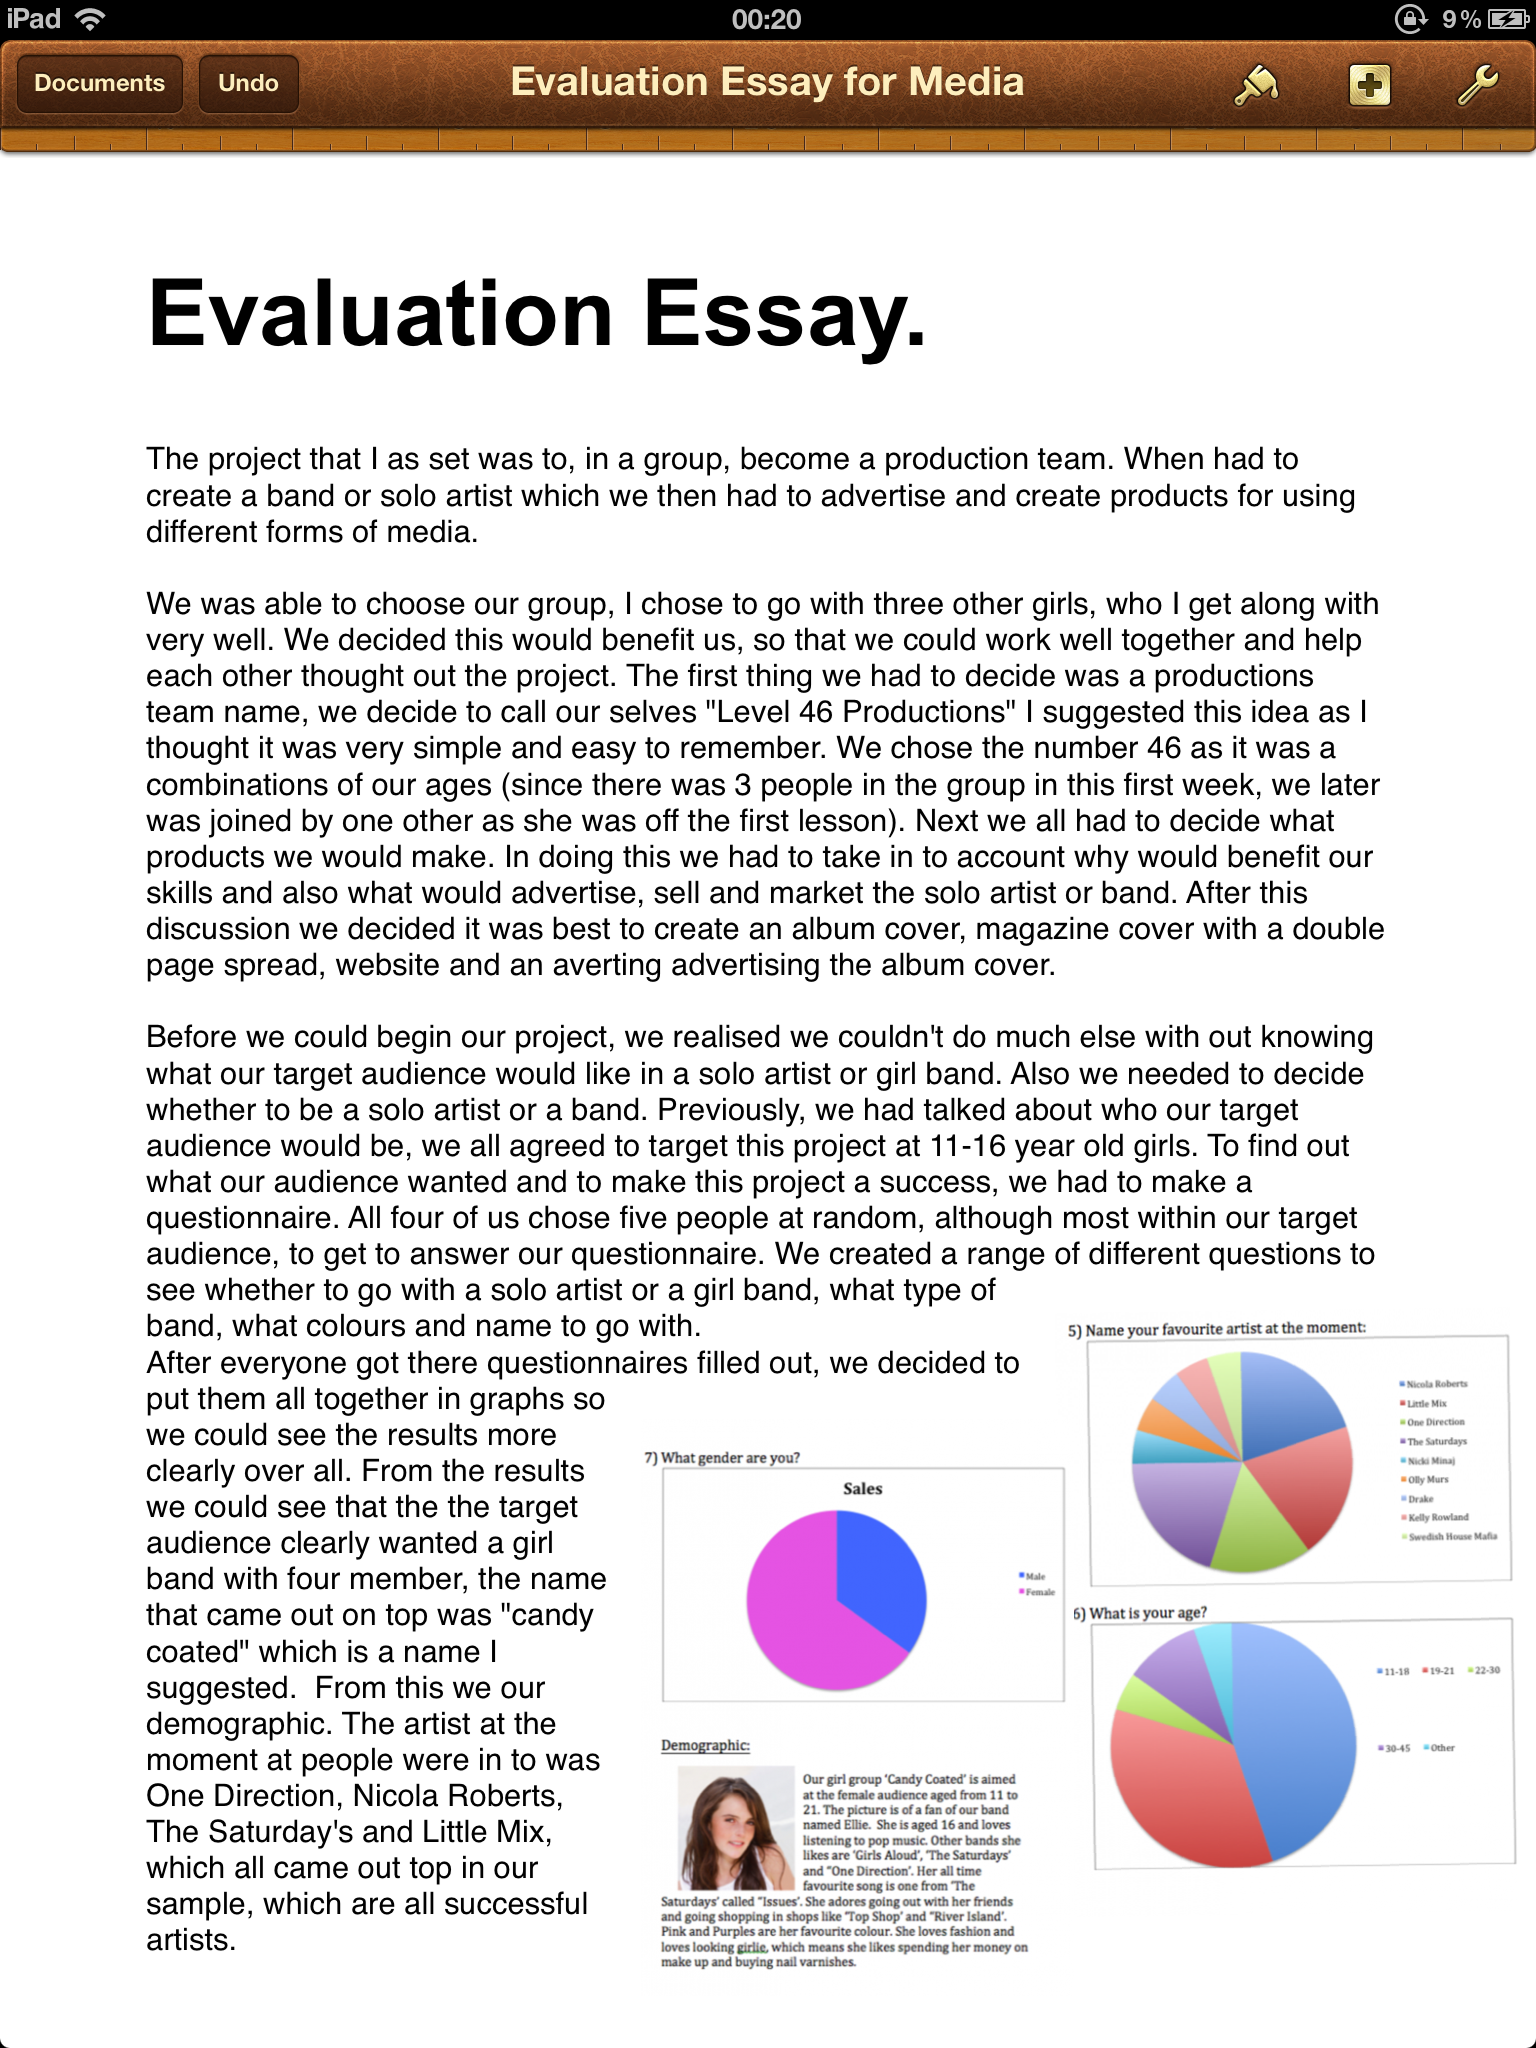 015 How To Write An Evaluation Essay Pg Outstanding A Self Sample Critical Psychology On Product Full